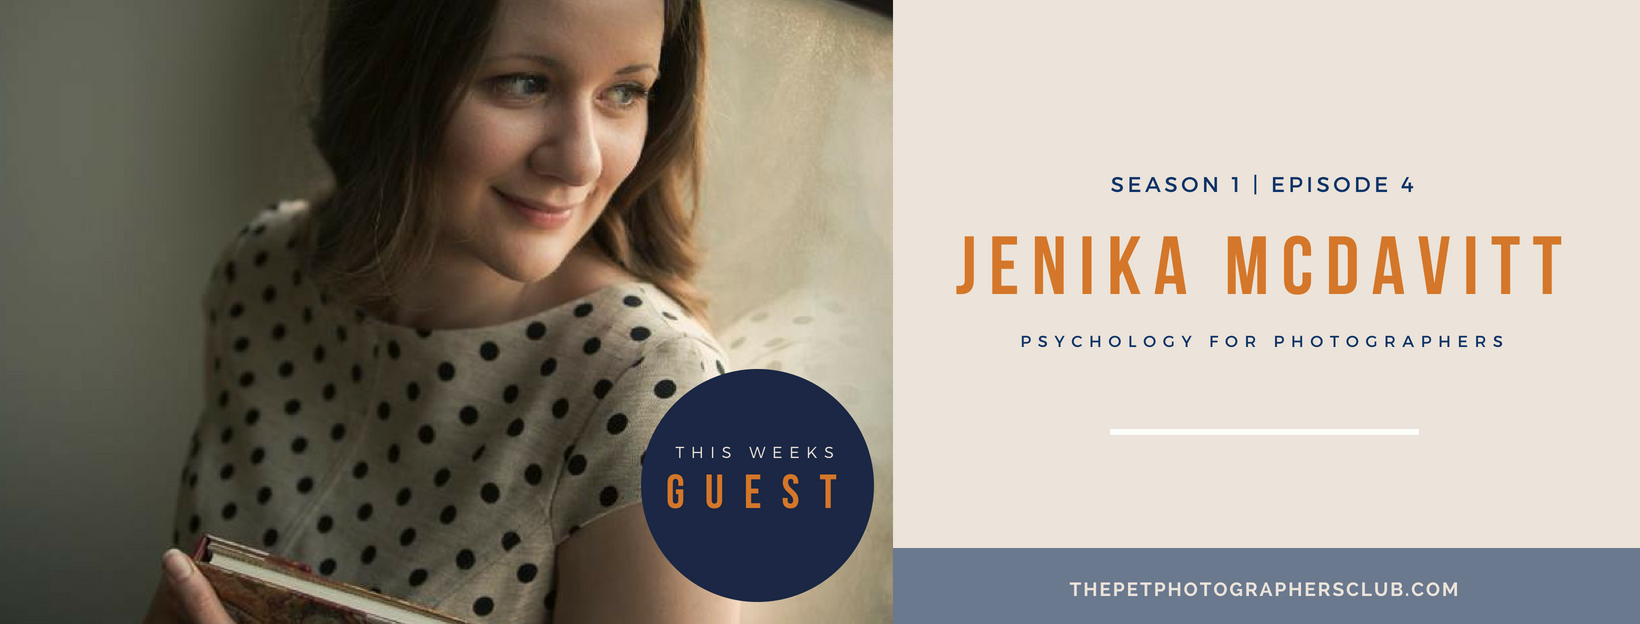 Jenika McDavitt - Psychology for Photographers - Make your business irresistible for your pet photography clients